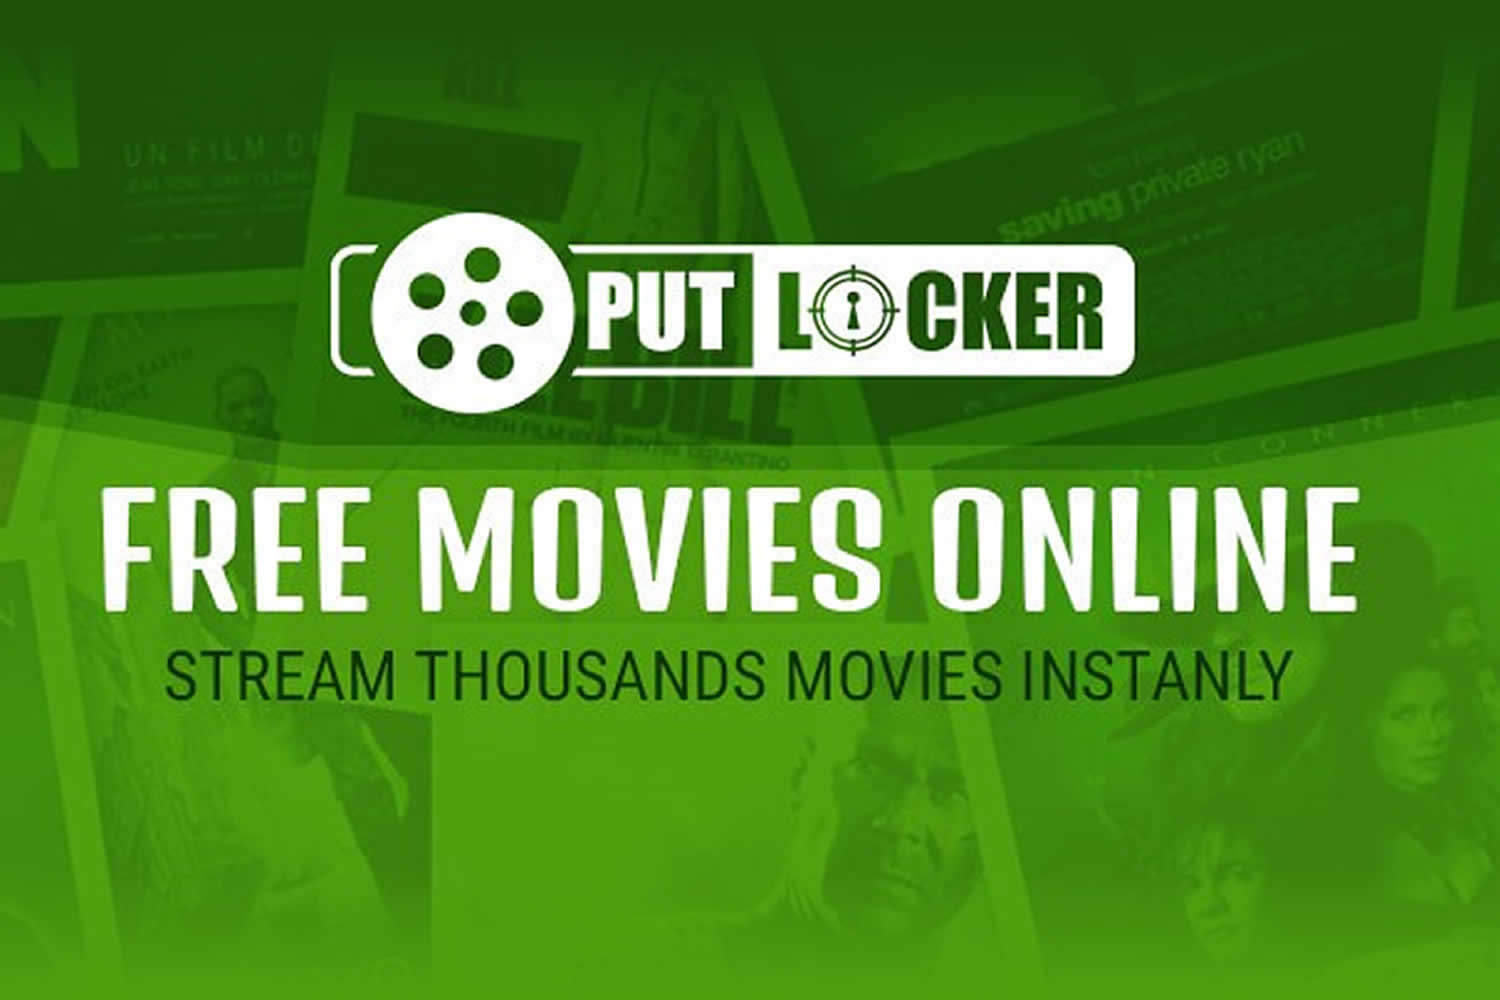 Watch Ejima and Ikushima Putlocker Movies